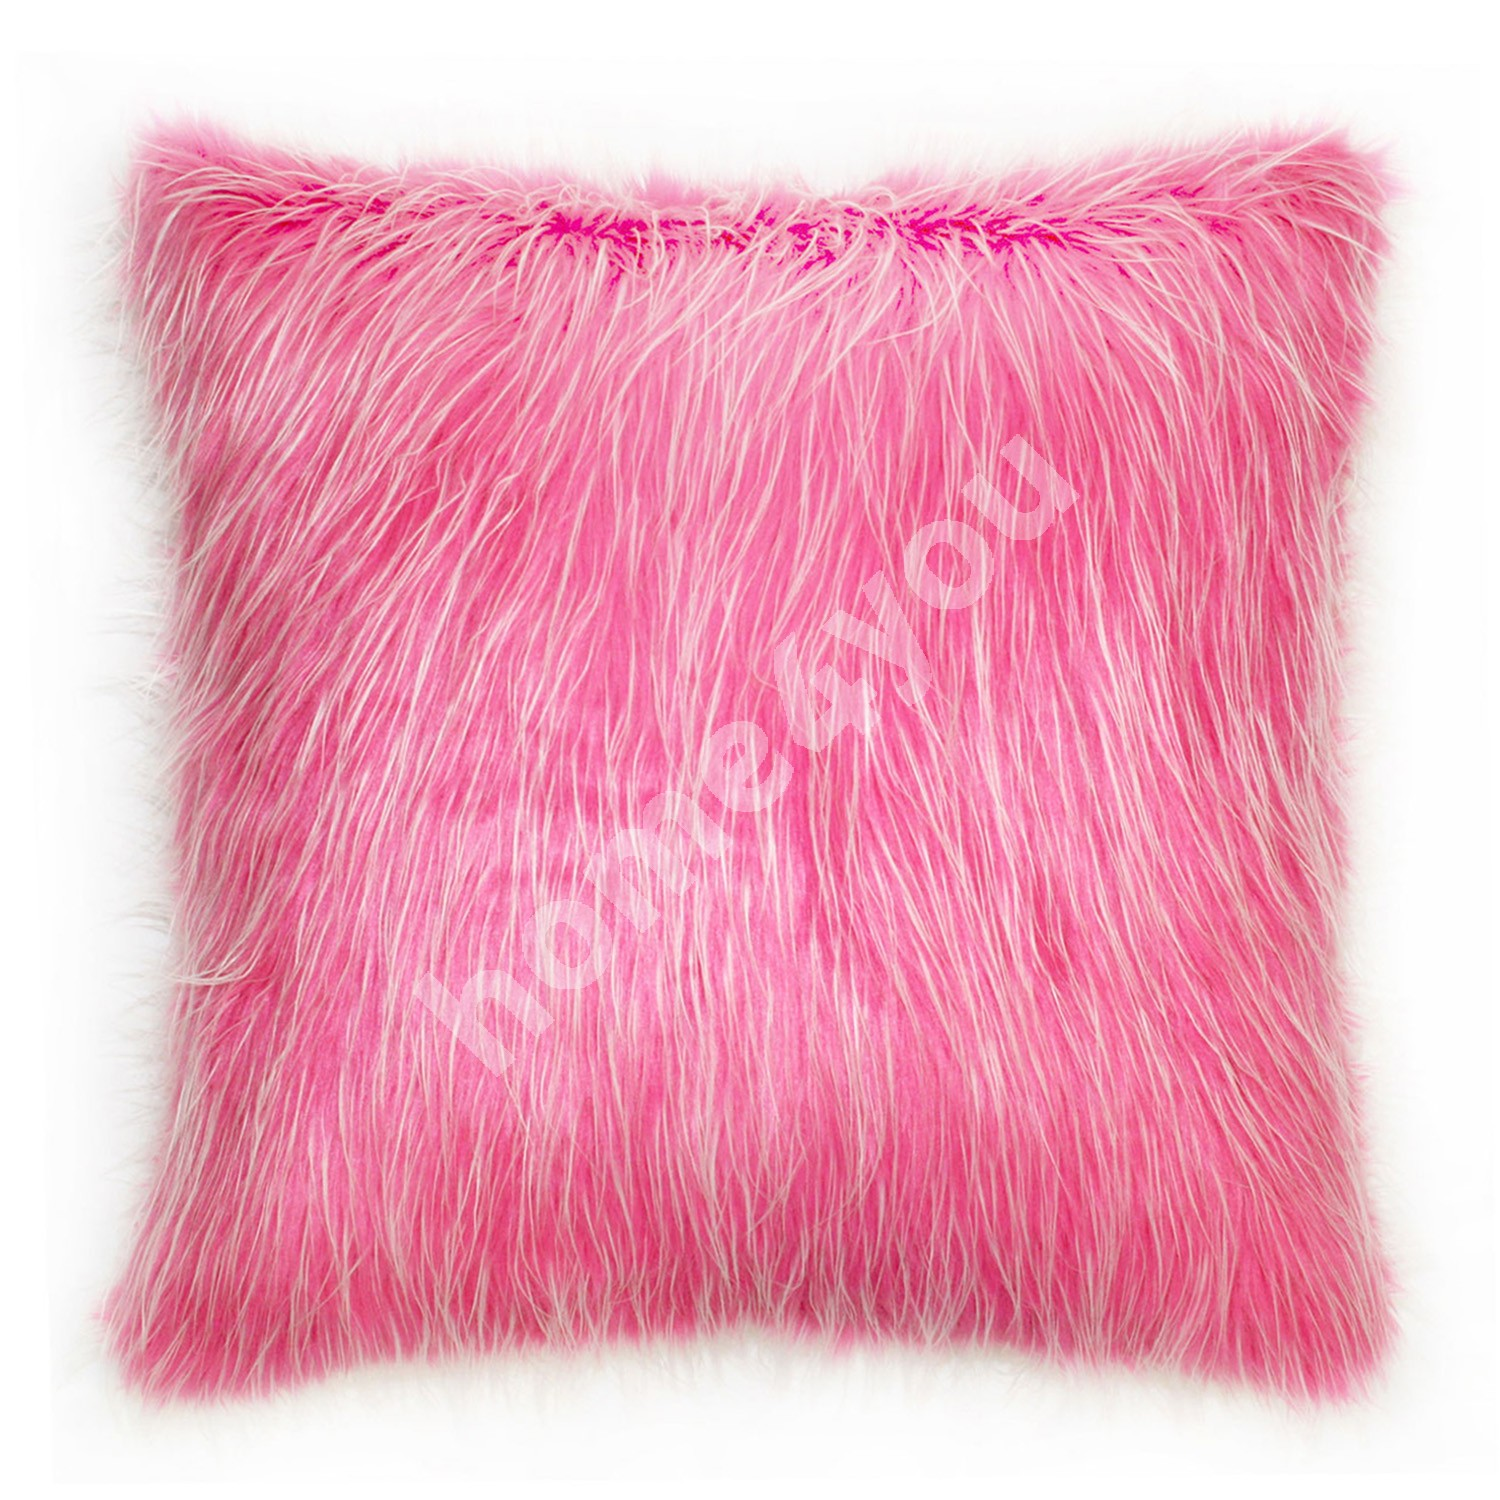 Pillow TREND 50x50cm, 100%polyester, pink